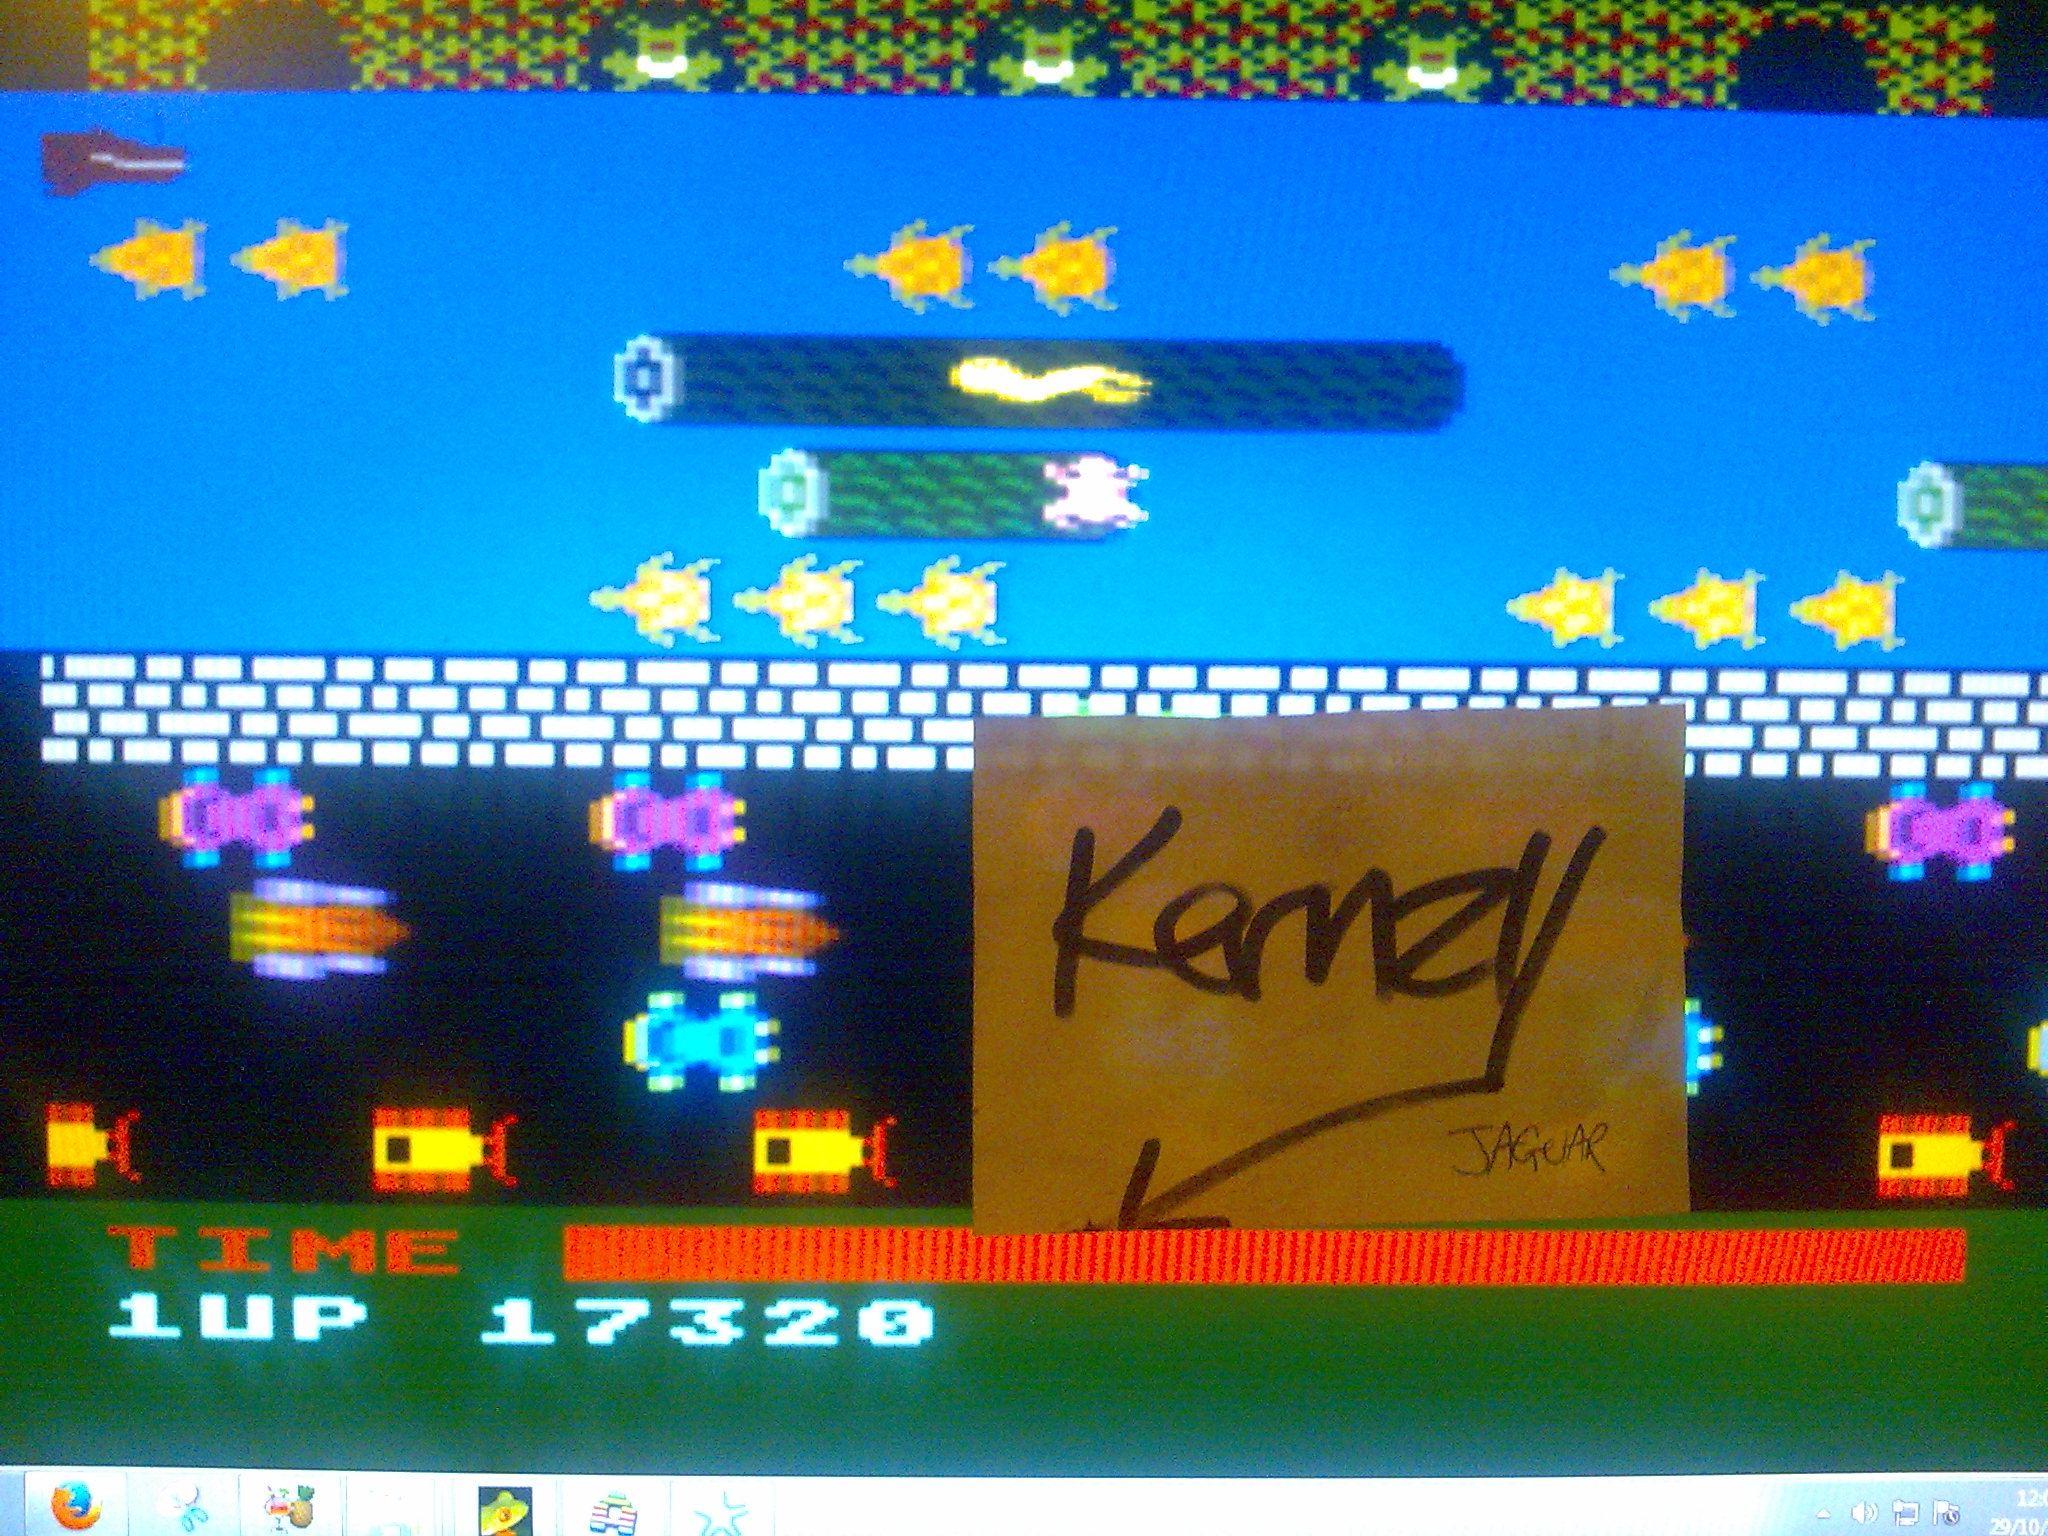 kernzy: Frogger [Parker Bros] (Atari 400/800/XL/XE Emulated) 17,320 points on 2014-10-29 08:45:10